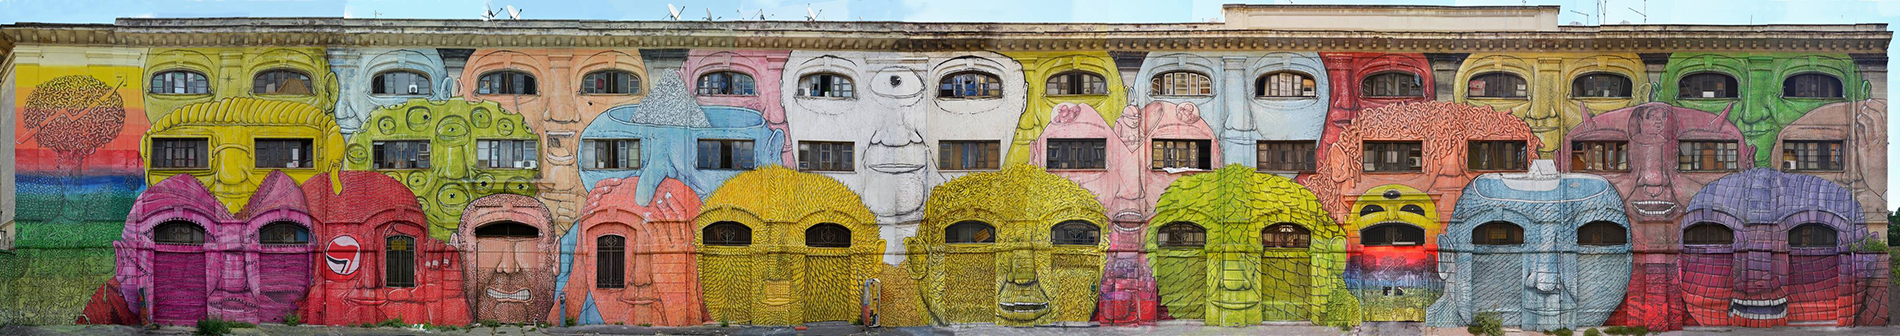 blu-new-stunning-mural-in-rome-01